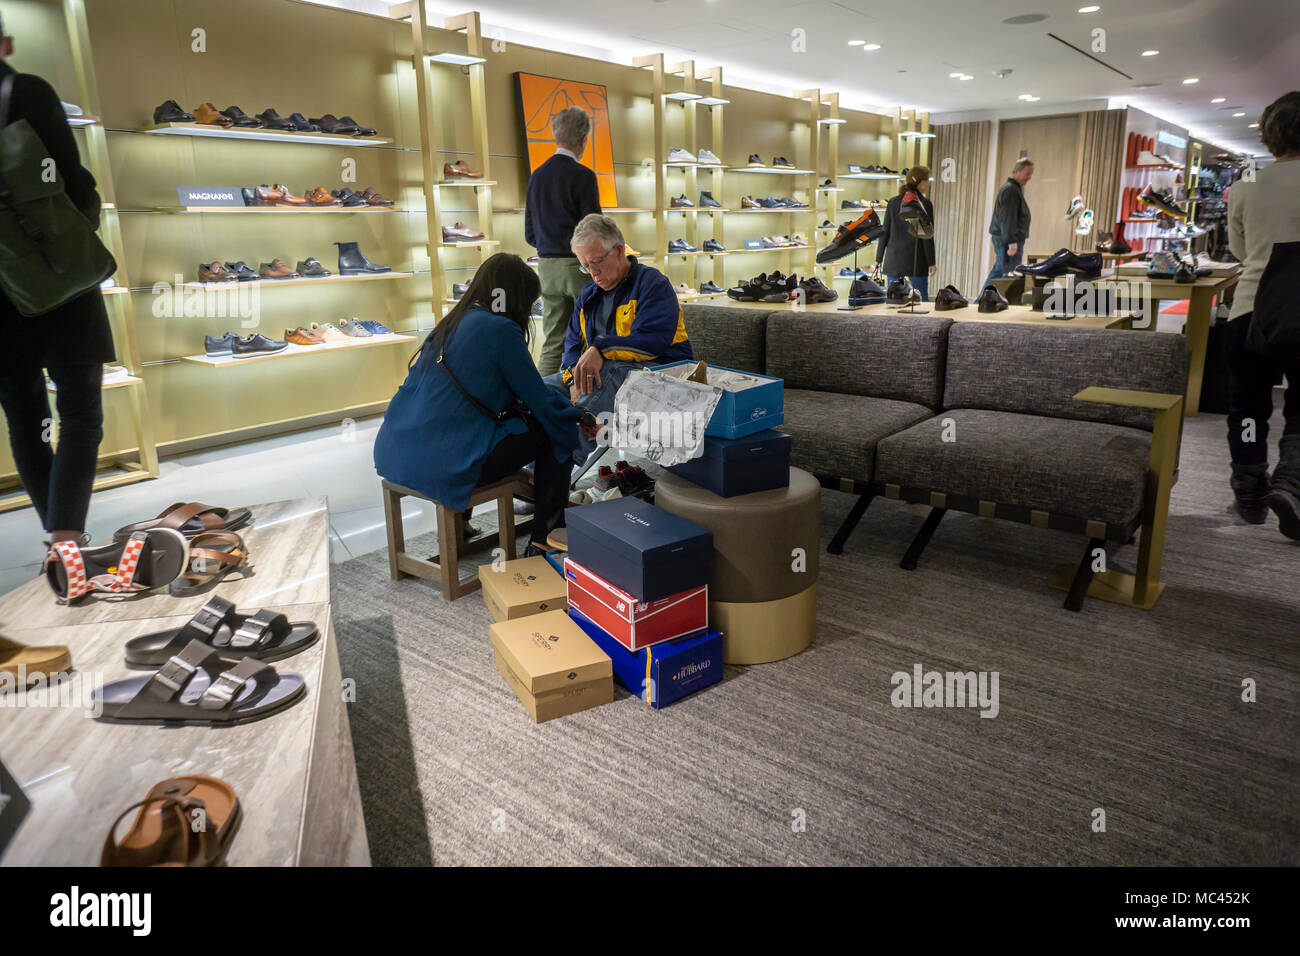 New York, USA. 12th Apr, 2018. Excited shoppers crowd the shoe department  in the new Nordstrom Men's Store in Midtown Manhattan in New York on its grand opening day, Thursday, April 12, 20187. The three-story 47,000 square feet store is directly across from the future women's store opening in 2019. The store is Nordstrom's first-ever New York store although it already has two Nordstrom Rack off-price stores. Credit: Richard Levine/Alamy Live News - Stock Image